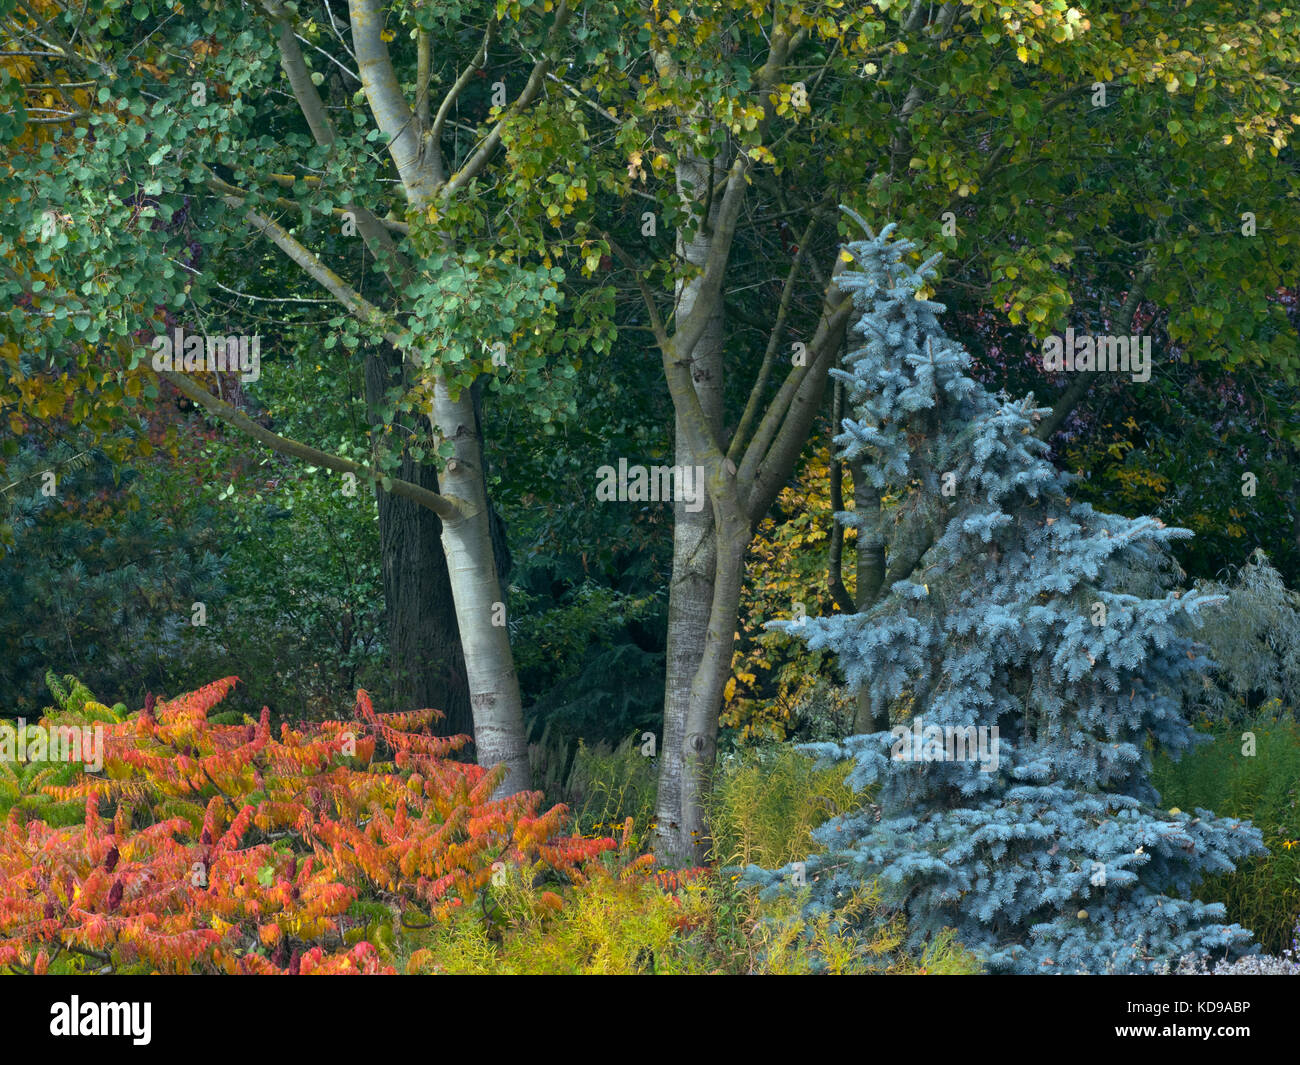 Blue spruce Picea pungens and other Autumn foliage at Bressingham Gardens Norfolk October - Stock Image